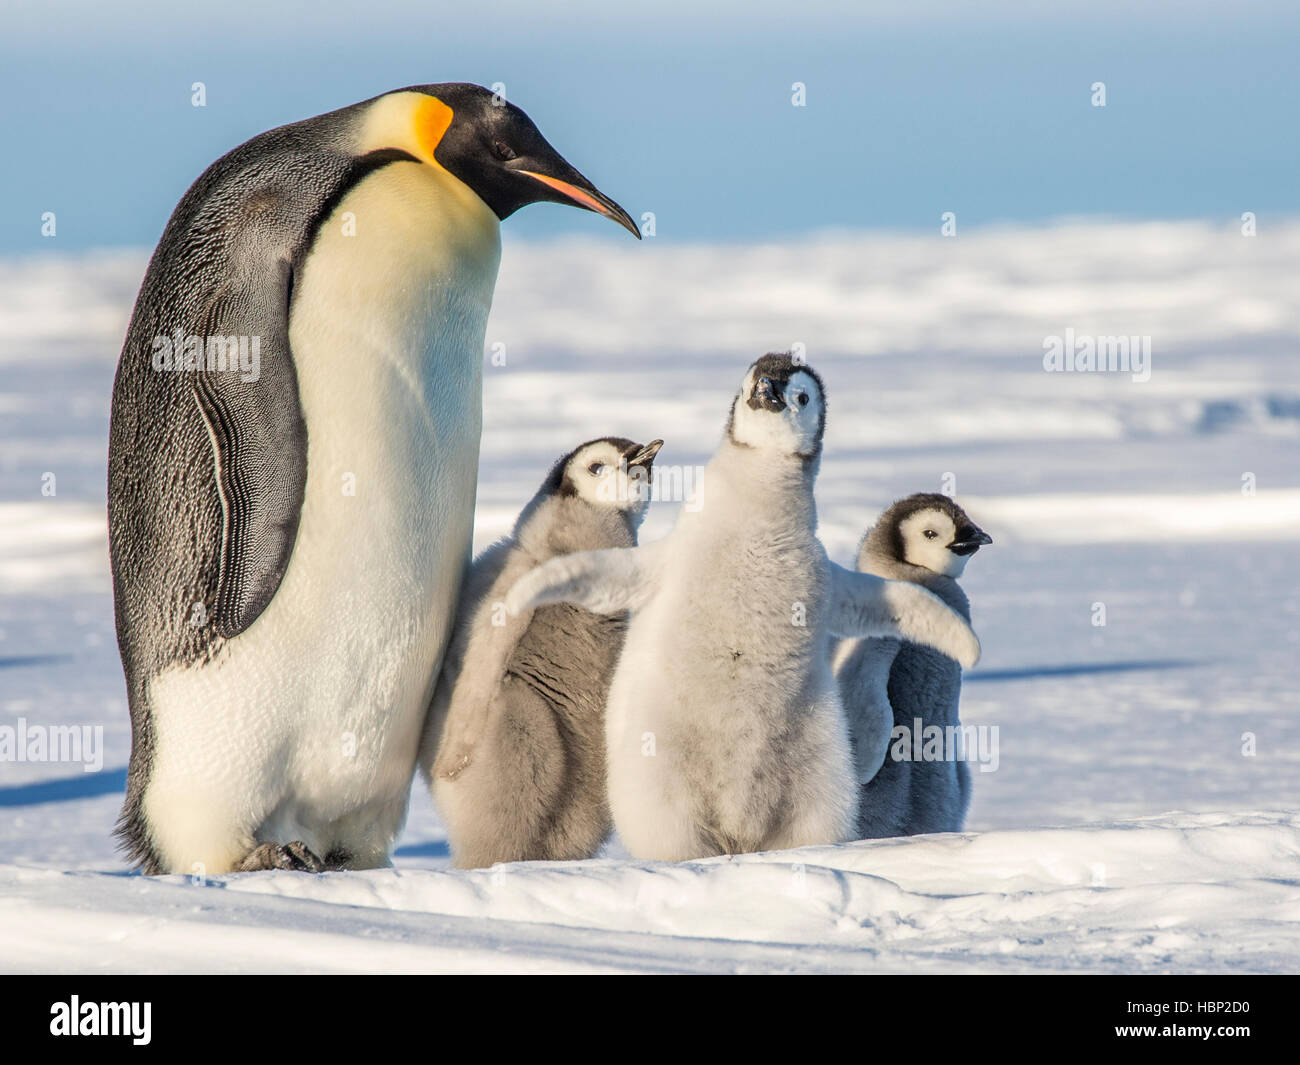 An adult Emperor Penguin with three chicks, one of which has its wings extended - Stock Image